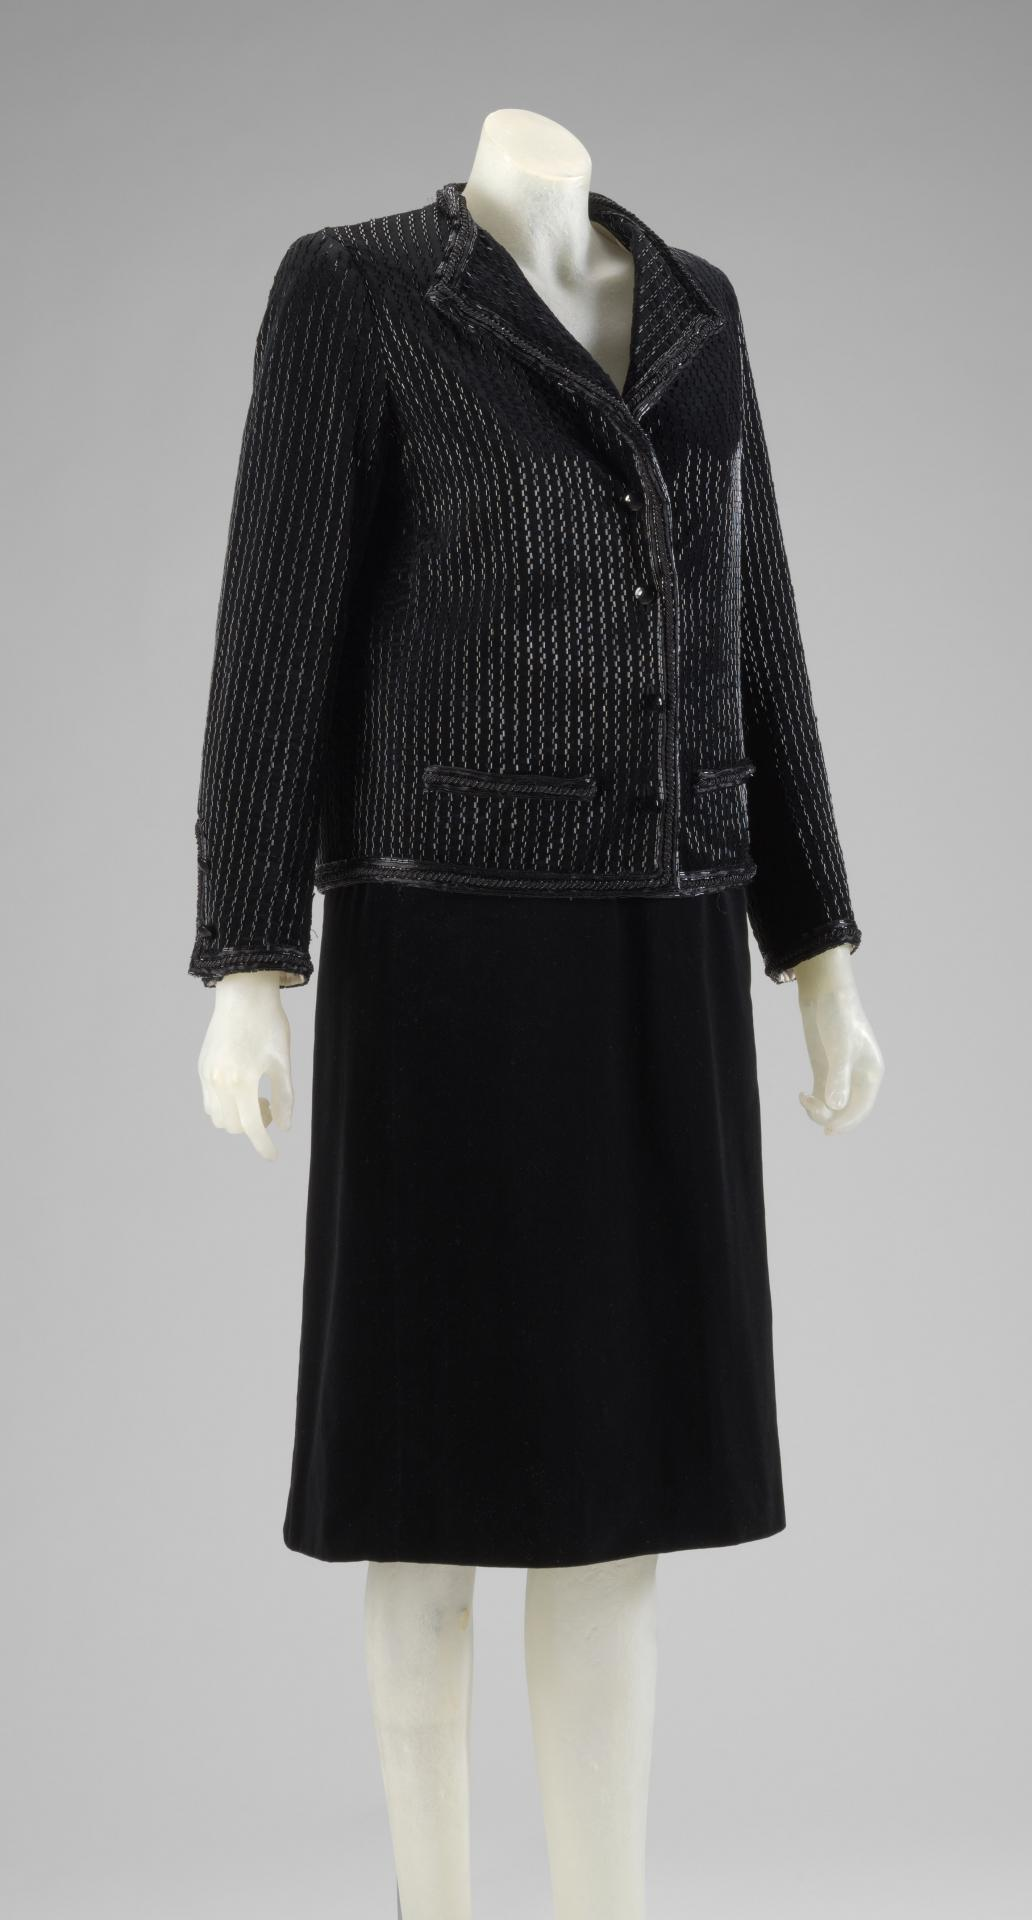 Suit; comprising jacket and skirt